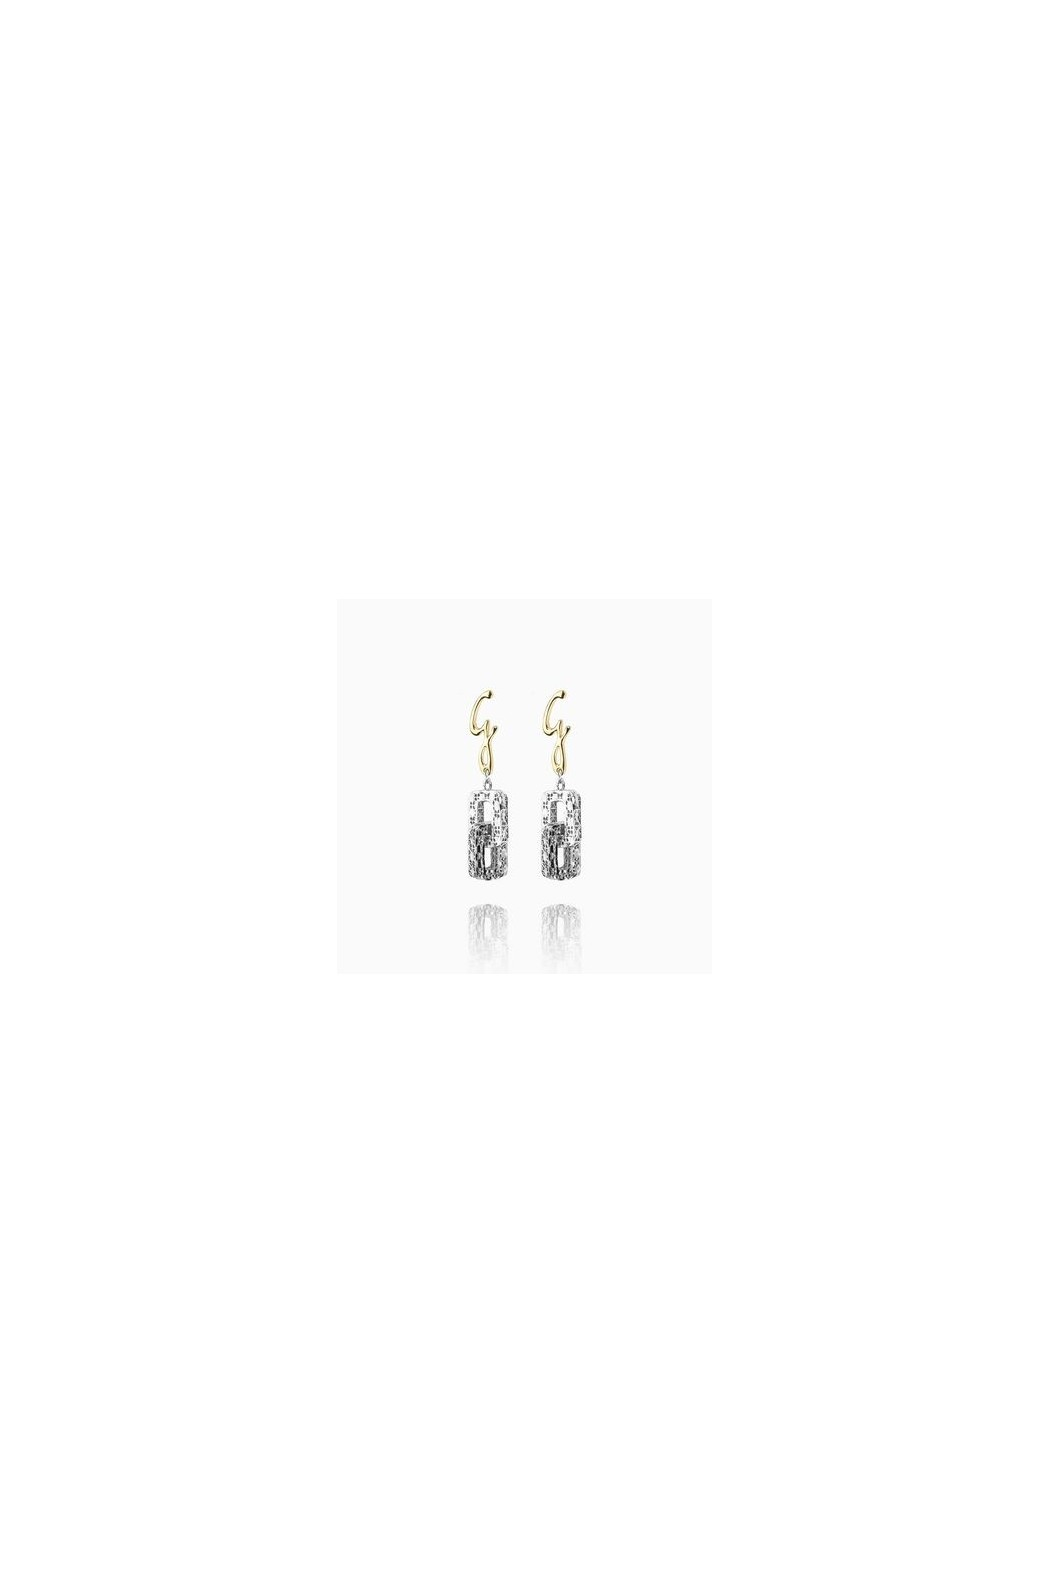 EARRINGS GATTINONI